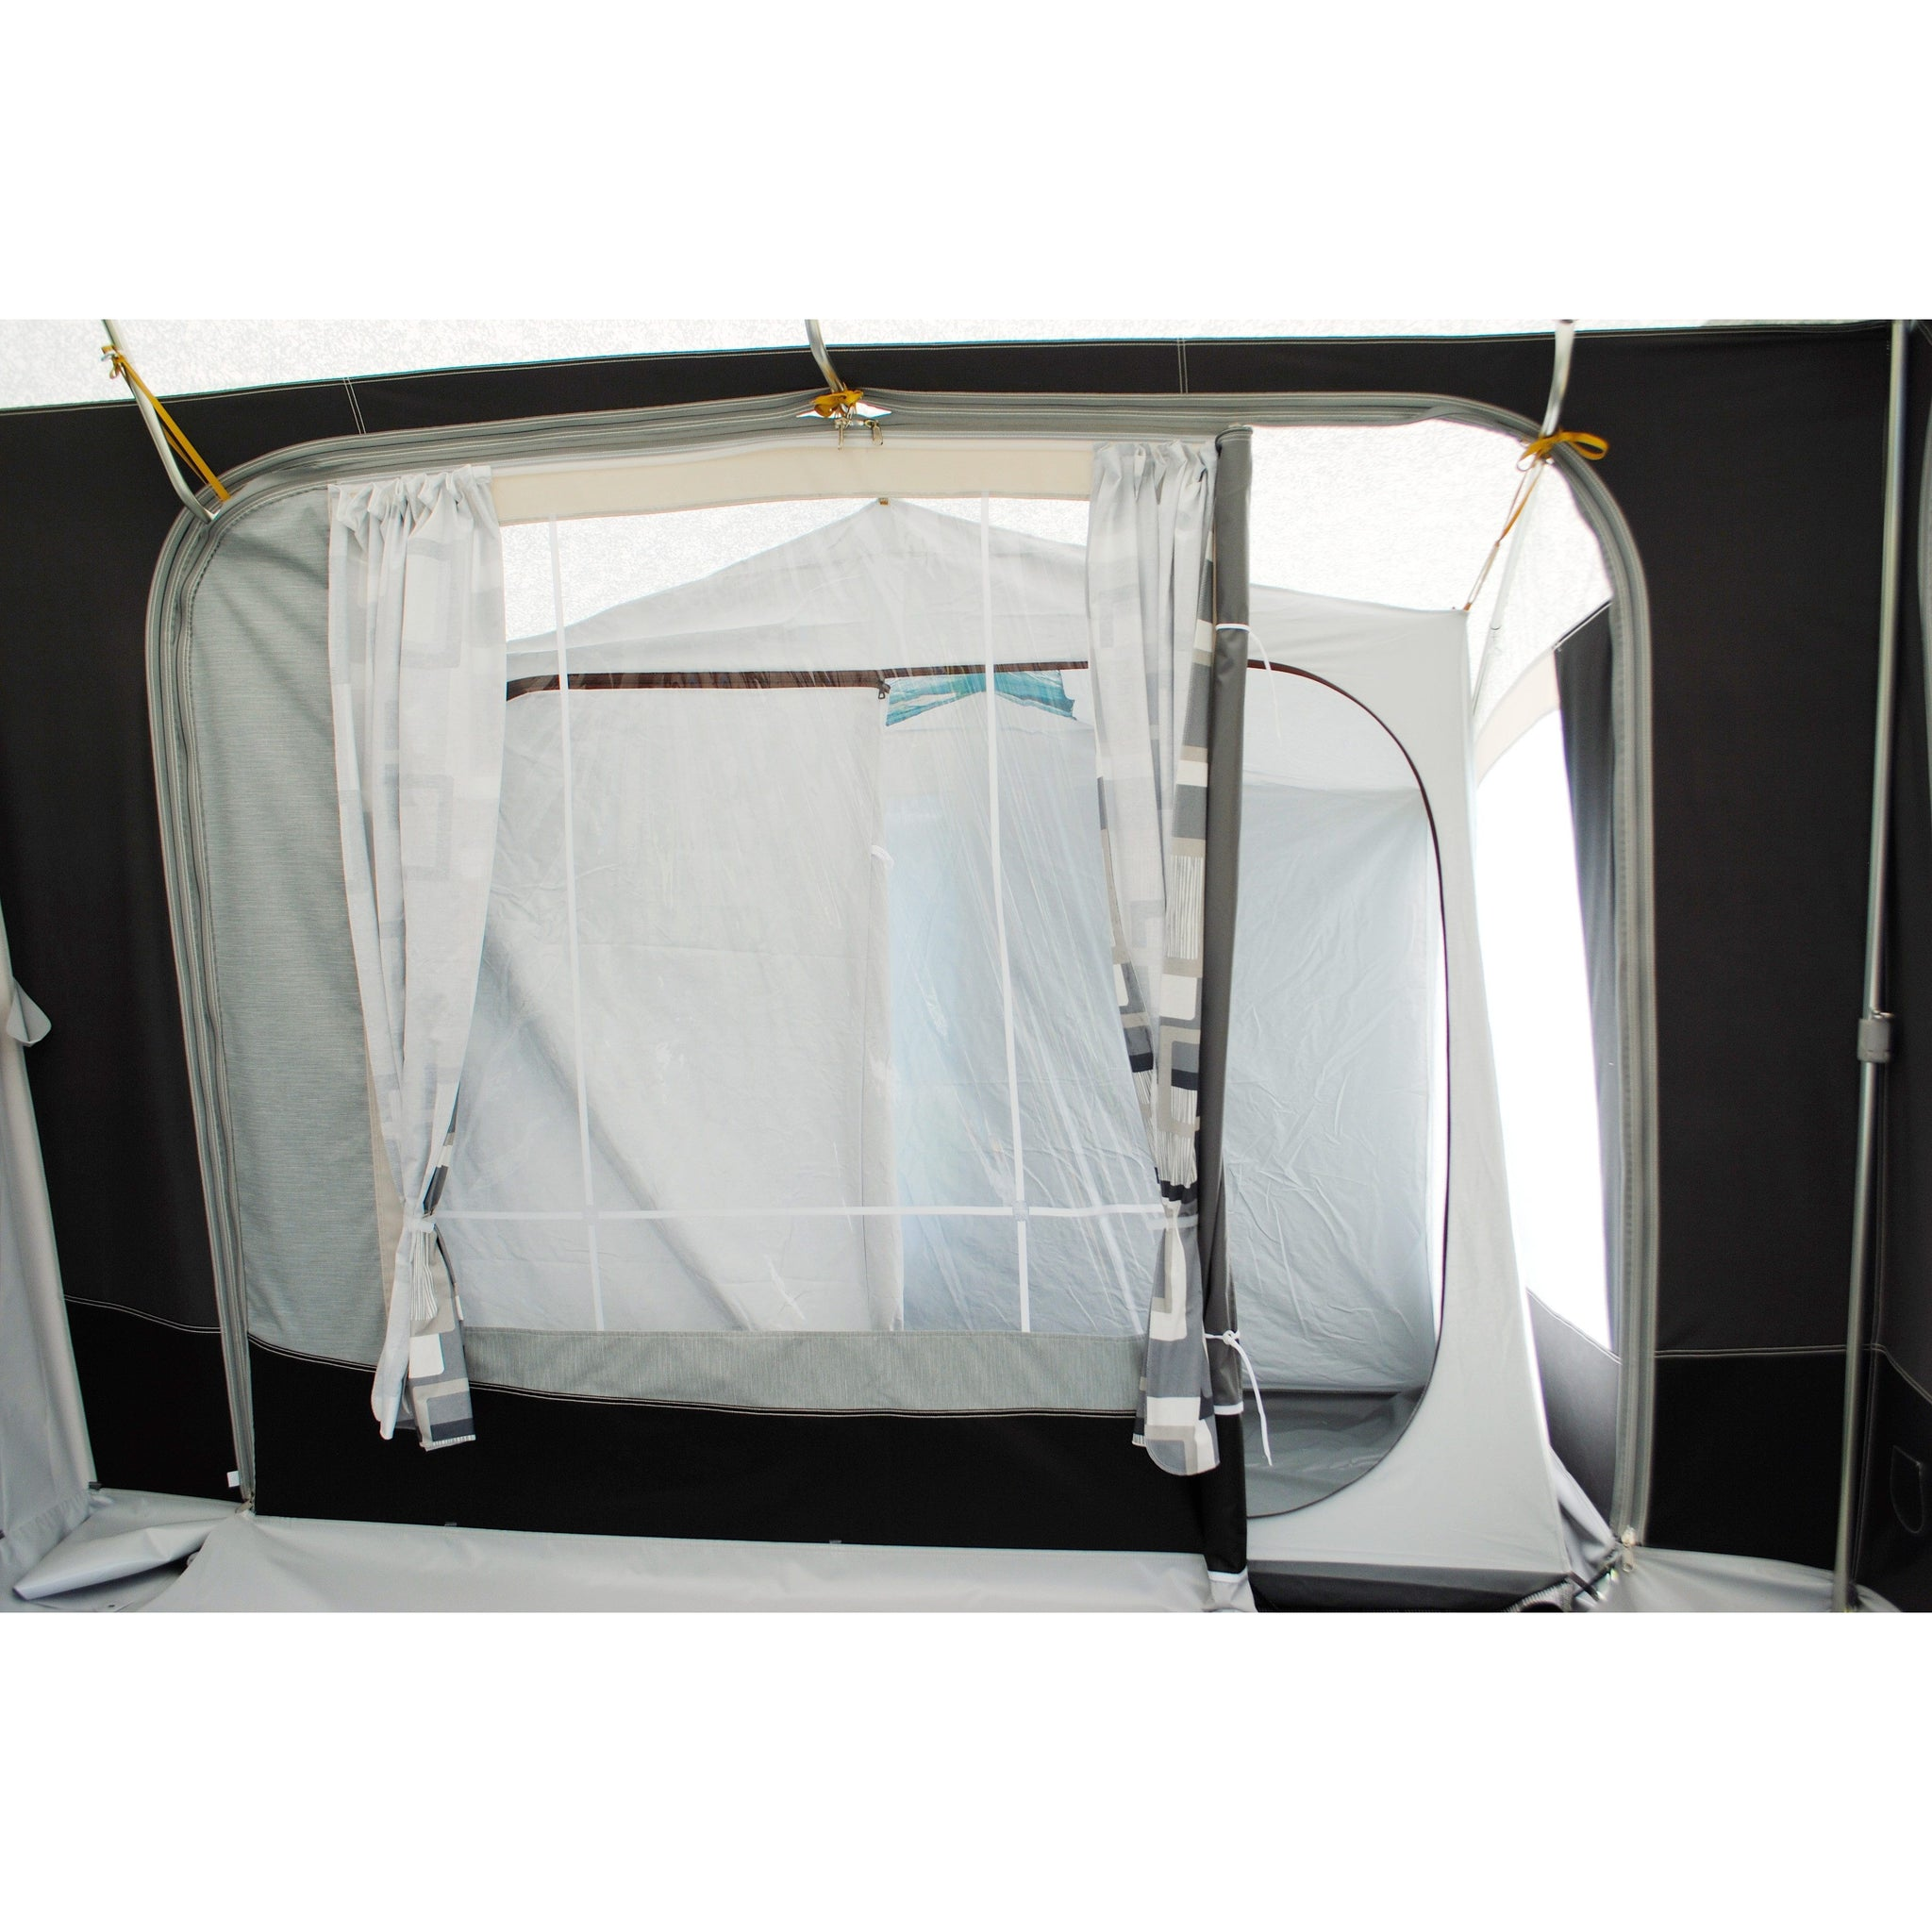 away package drive tourer tent deal plus sunncamp awning motor